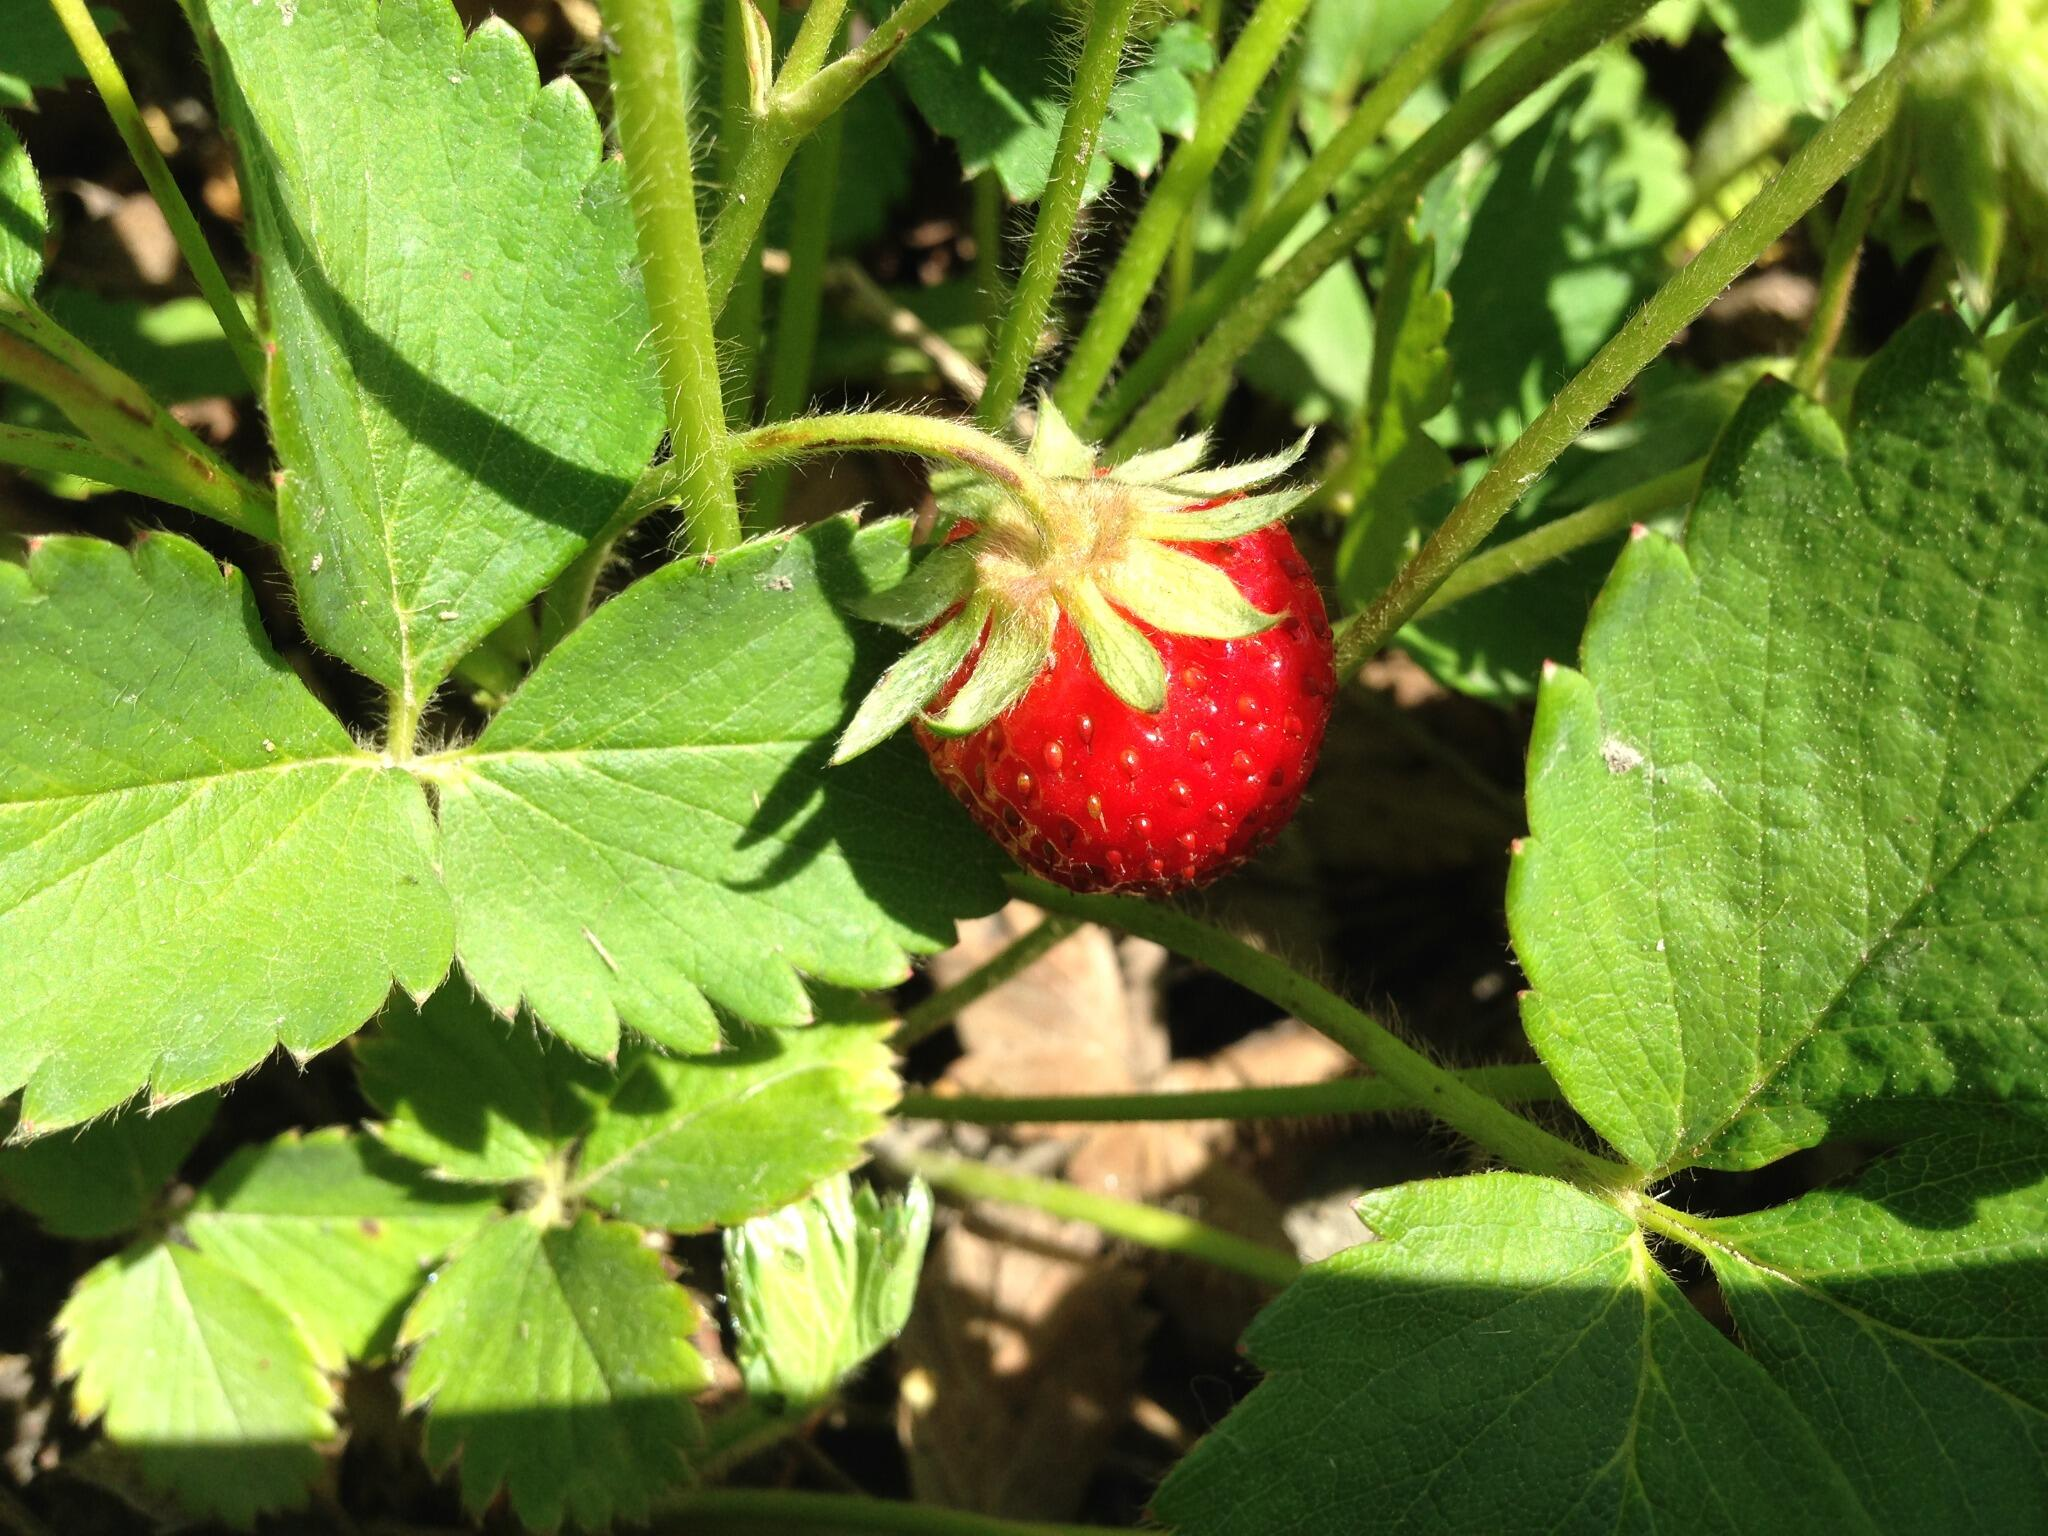 @gardenchat My first strawberry of the season! Tiny, but tasty. http://t.co/DGOq04quJg